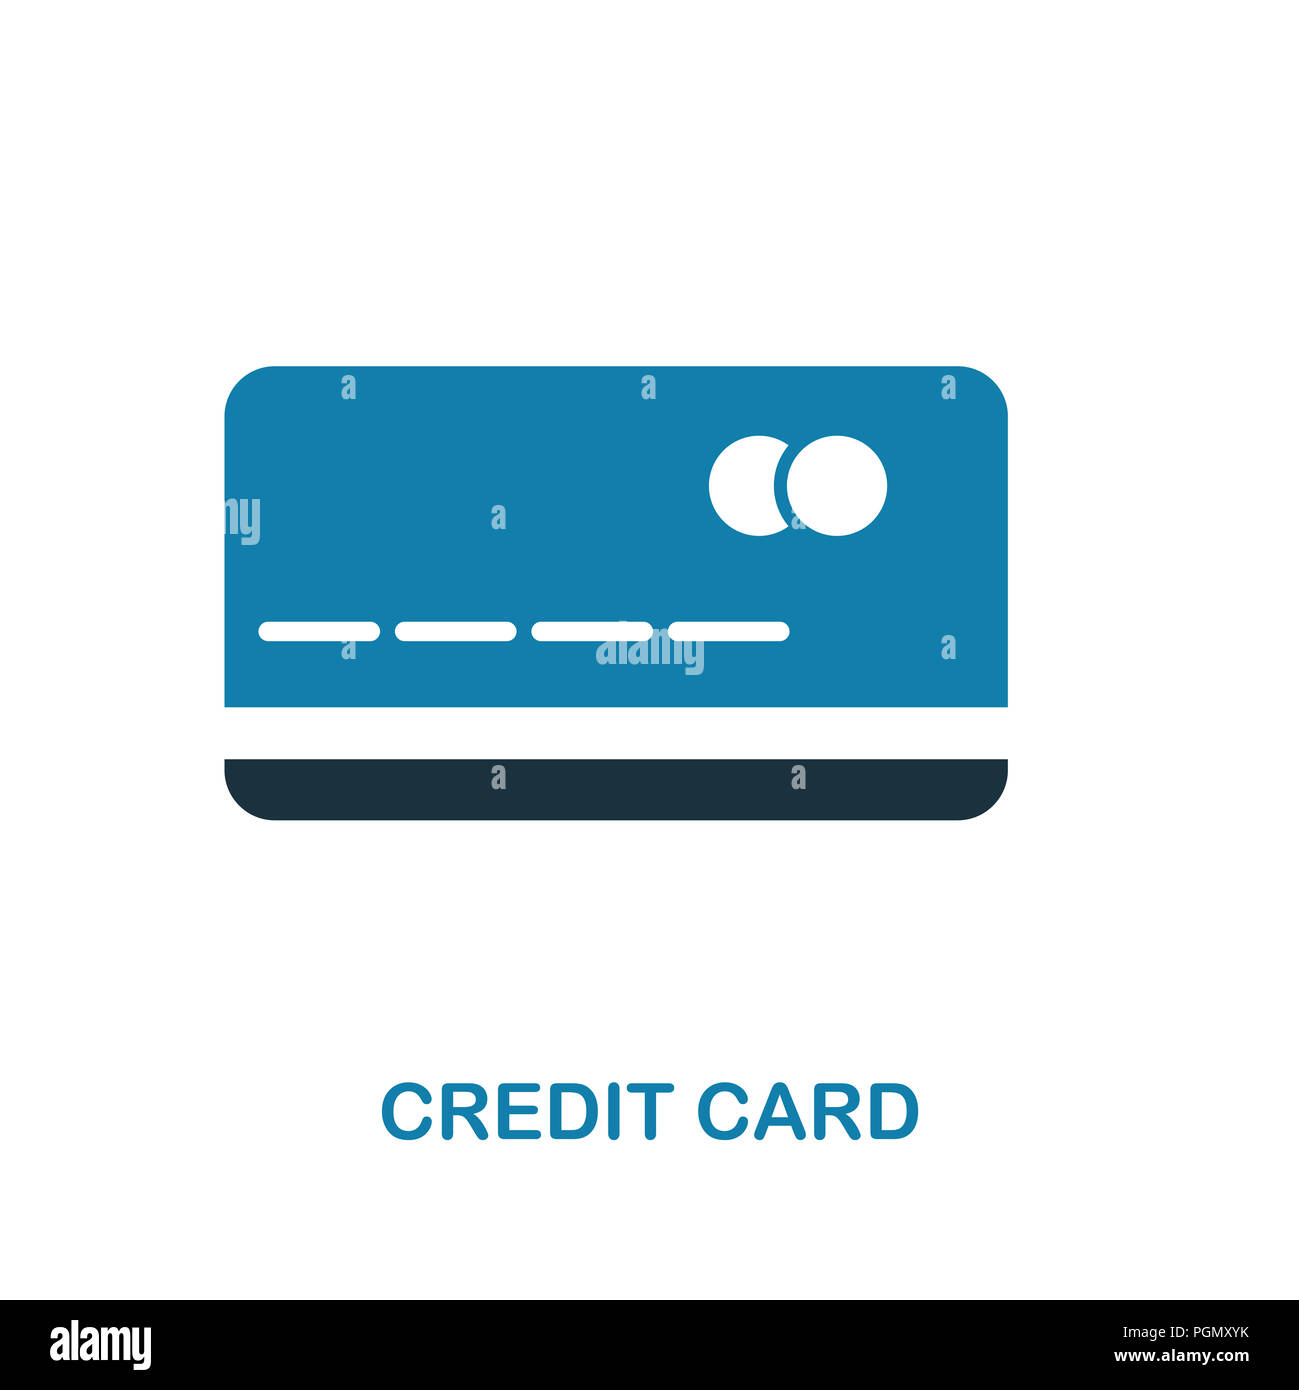 Miles And More Kreditkarte Gesperrt Web Kreditkarte Apple Card 2019 01 31